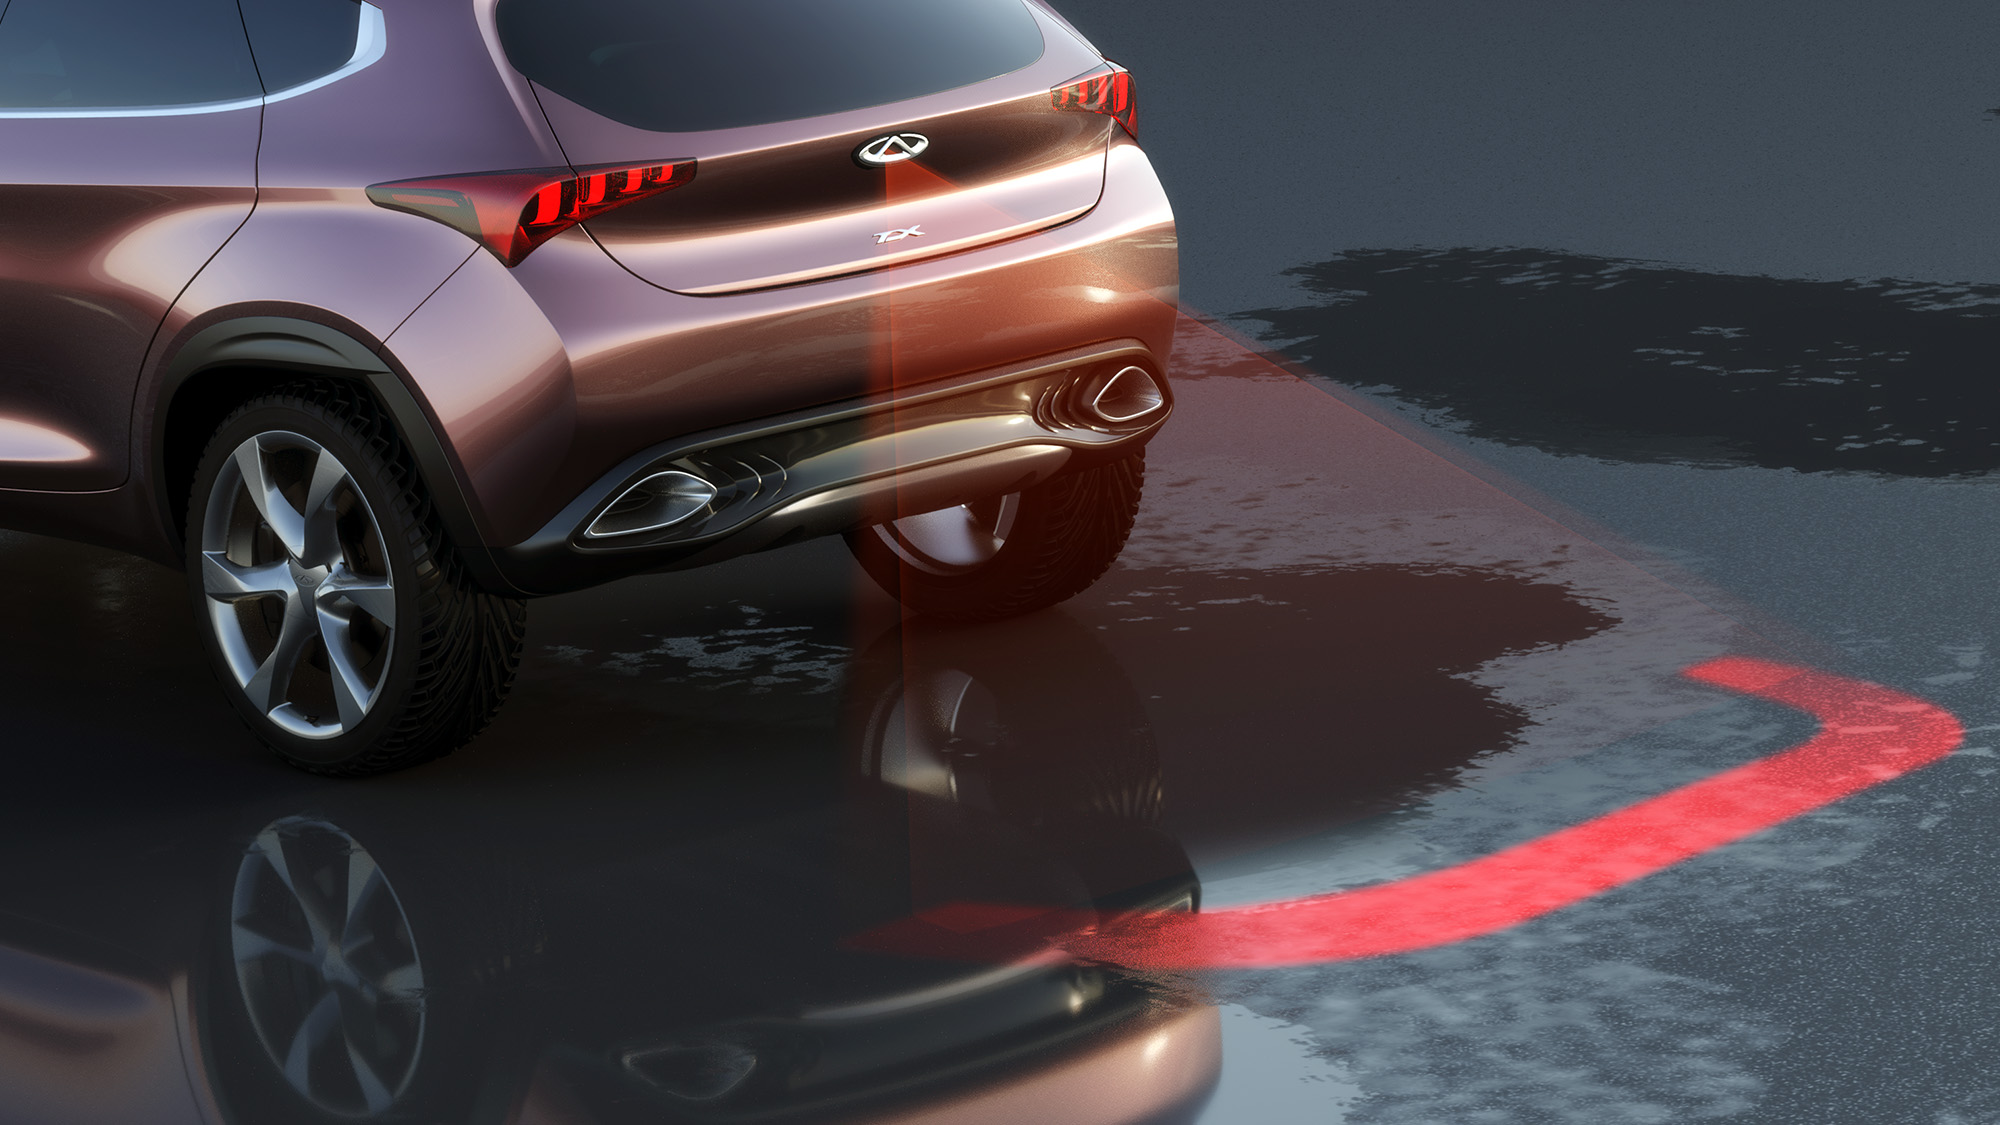 The 'virtual bumper' visualizes the safety area for the car, prefiguring what would become AutoPilor.